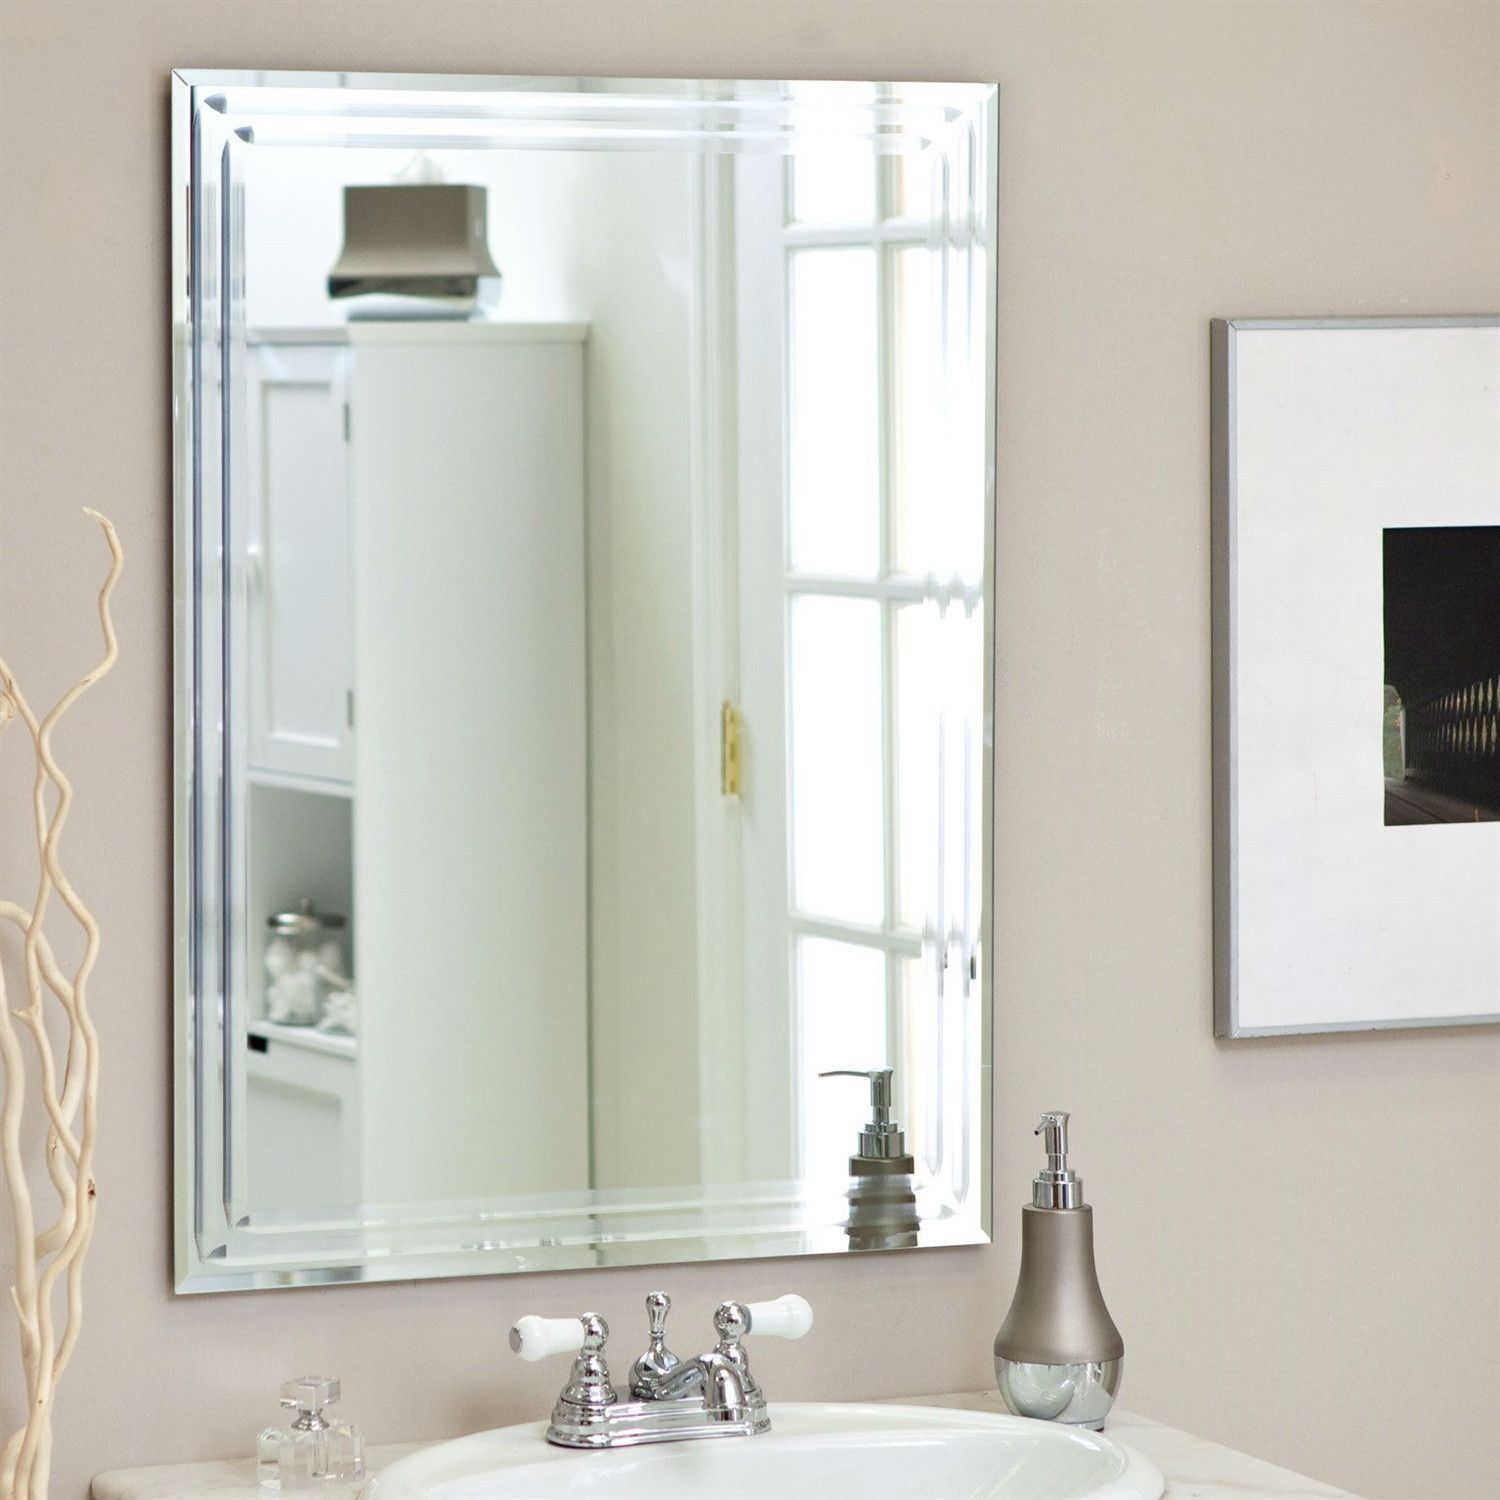 Rectangular inch bathroom vanity wall mirror with triplebevel